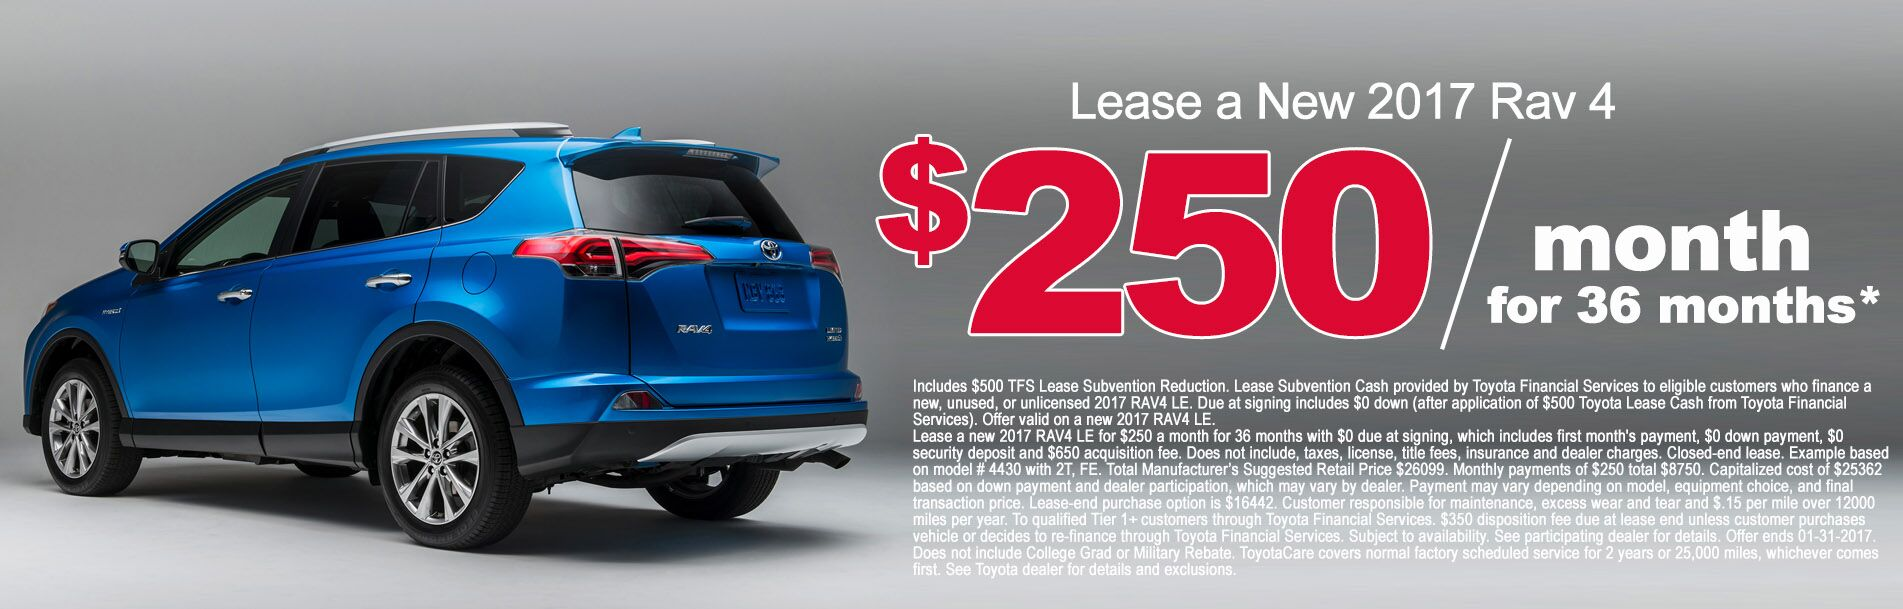 2017 Rav 4 Lease Deals at Rochester Toyota